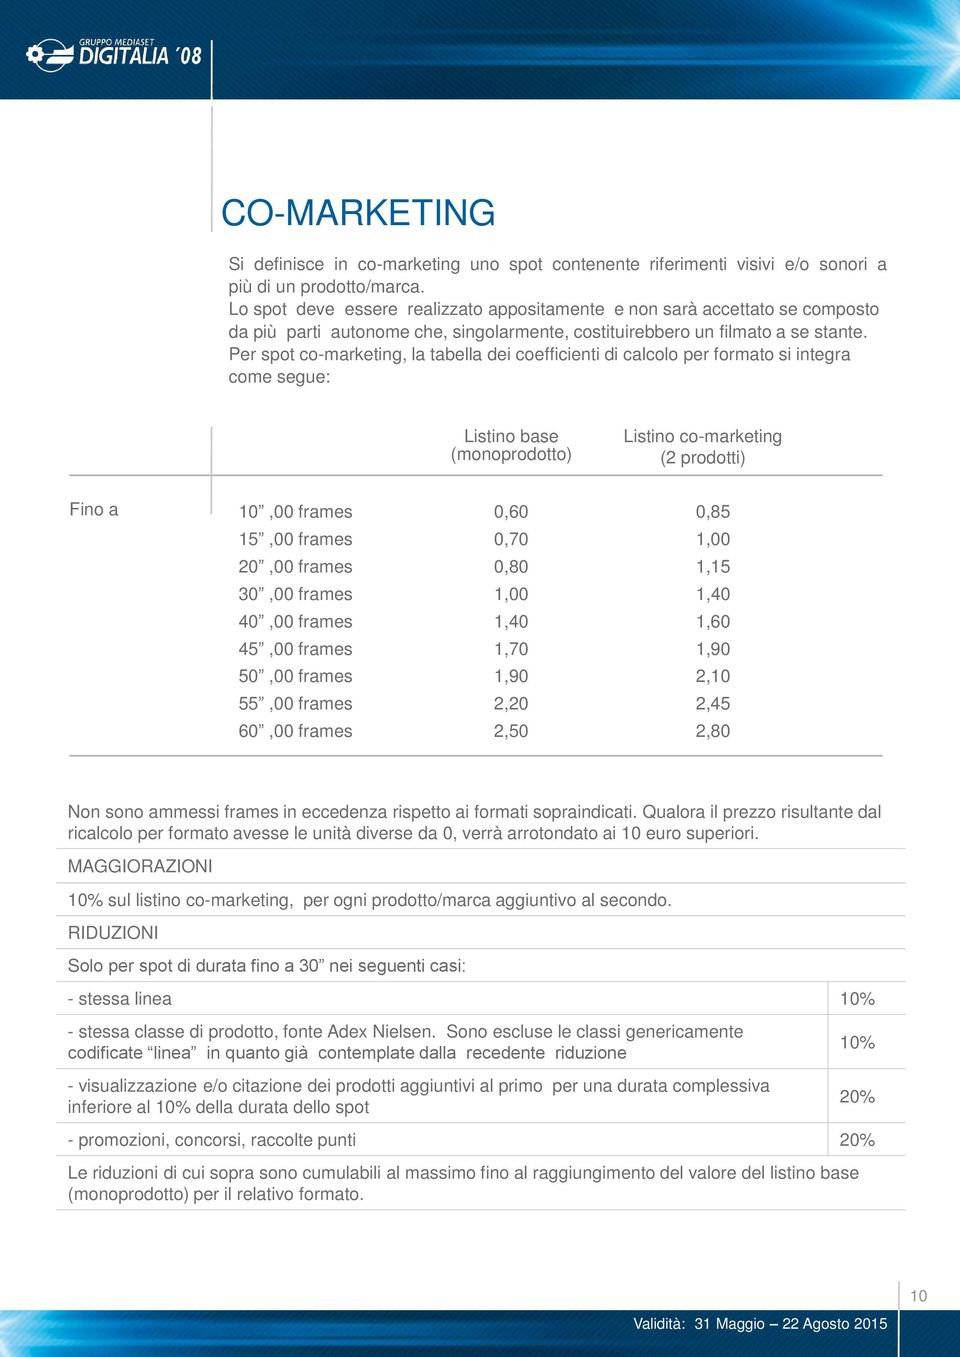 Per spot co-marketing, la tabella dei coefficienti di calcolo per formato si integra come segue: Listino base (monoprodotto) Listino co-marketing (2 prodotti) Fino a 10,00 frames 0,60 0,85 15,00